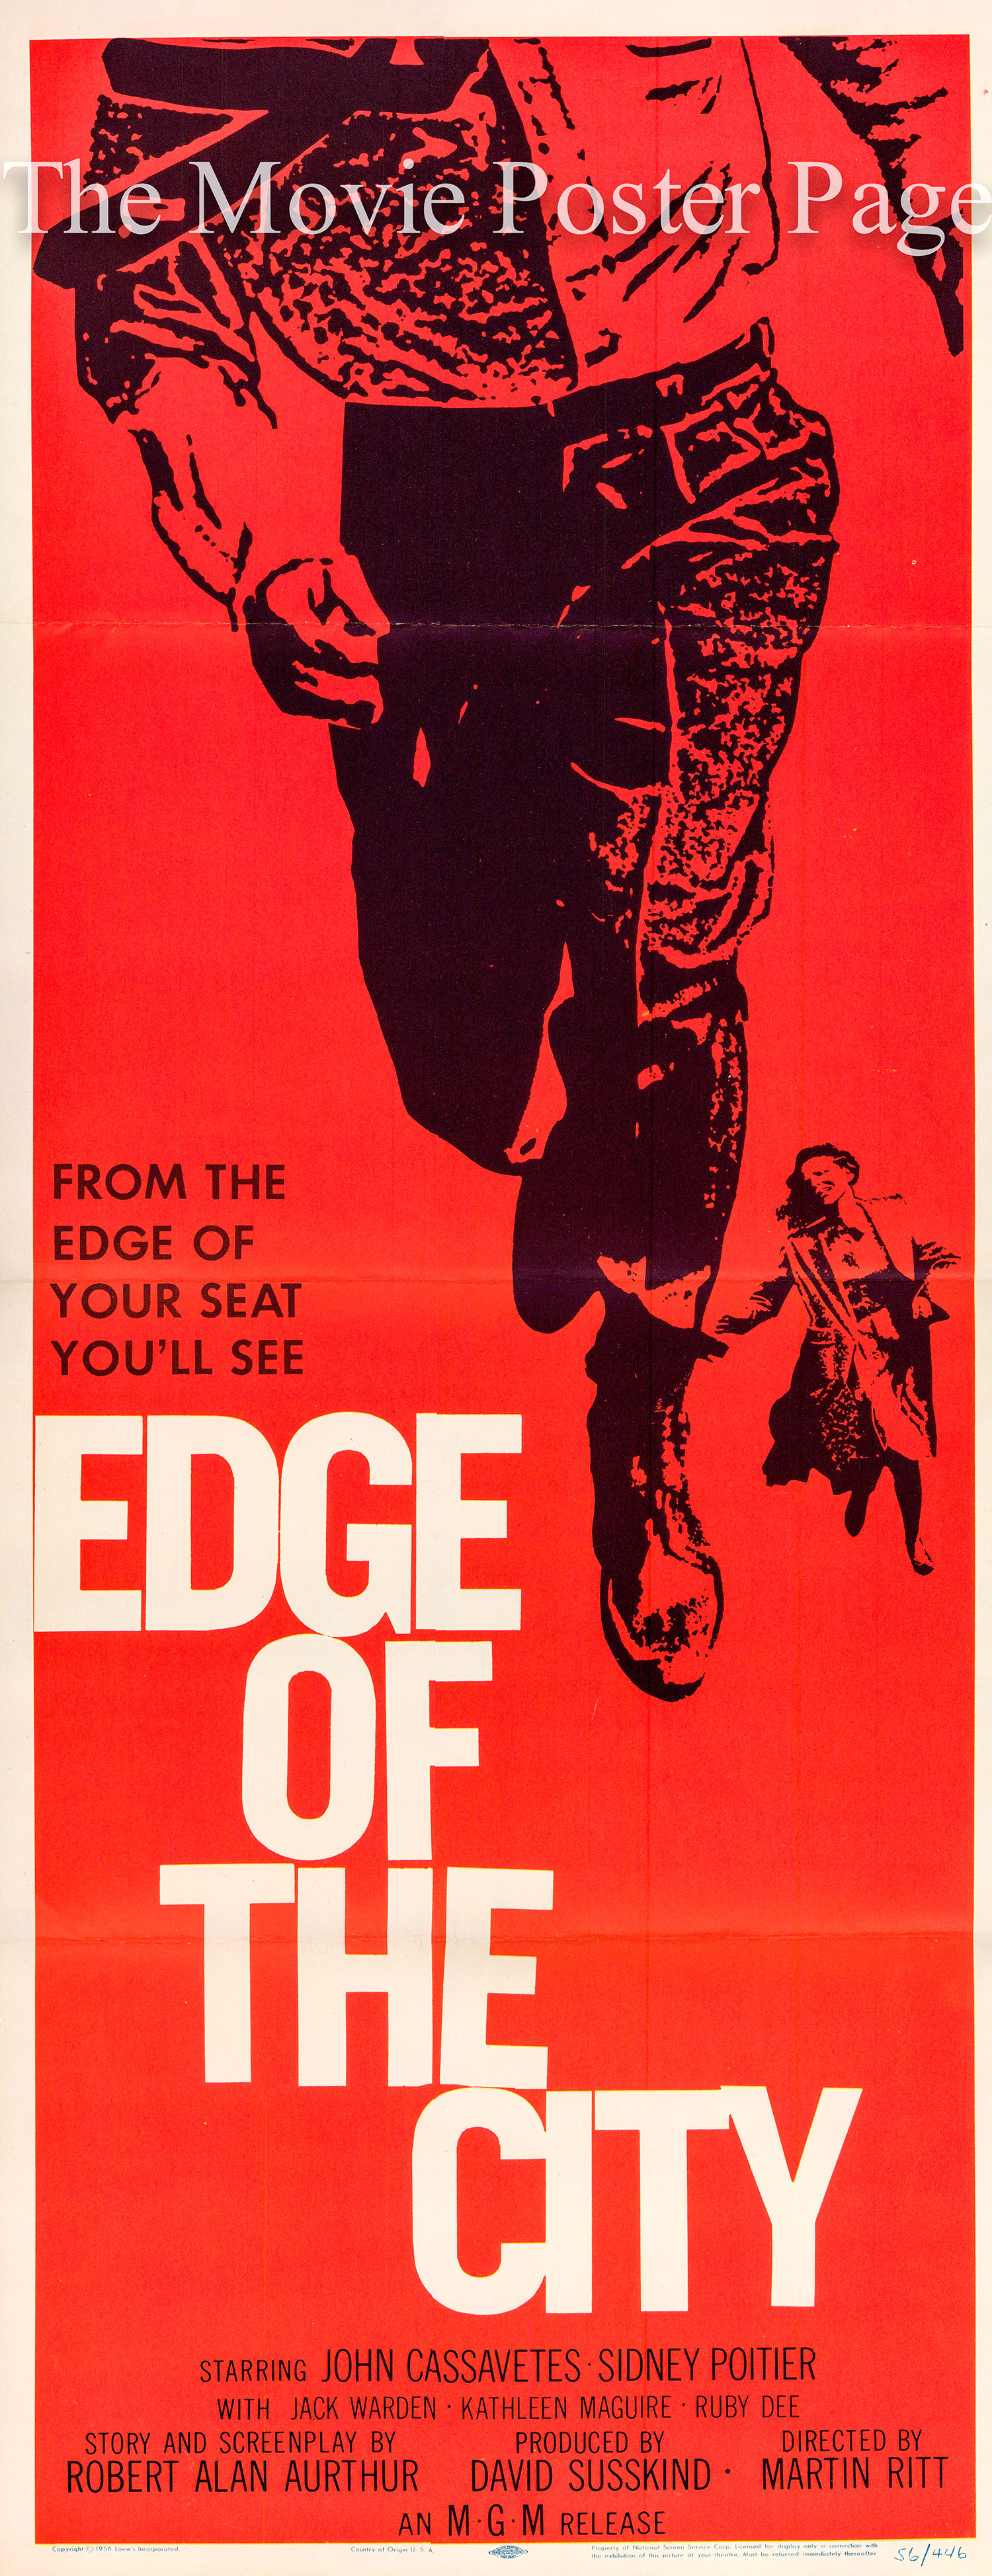 Pictured is a US insert promotional poster for the 1957 Martin Ritt film Edge of the City starring Sidney Poitier and John Cassavetes, with art by Saul Bass.